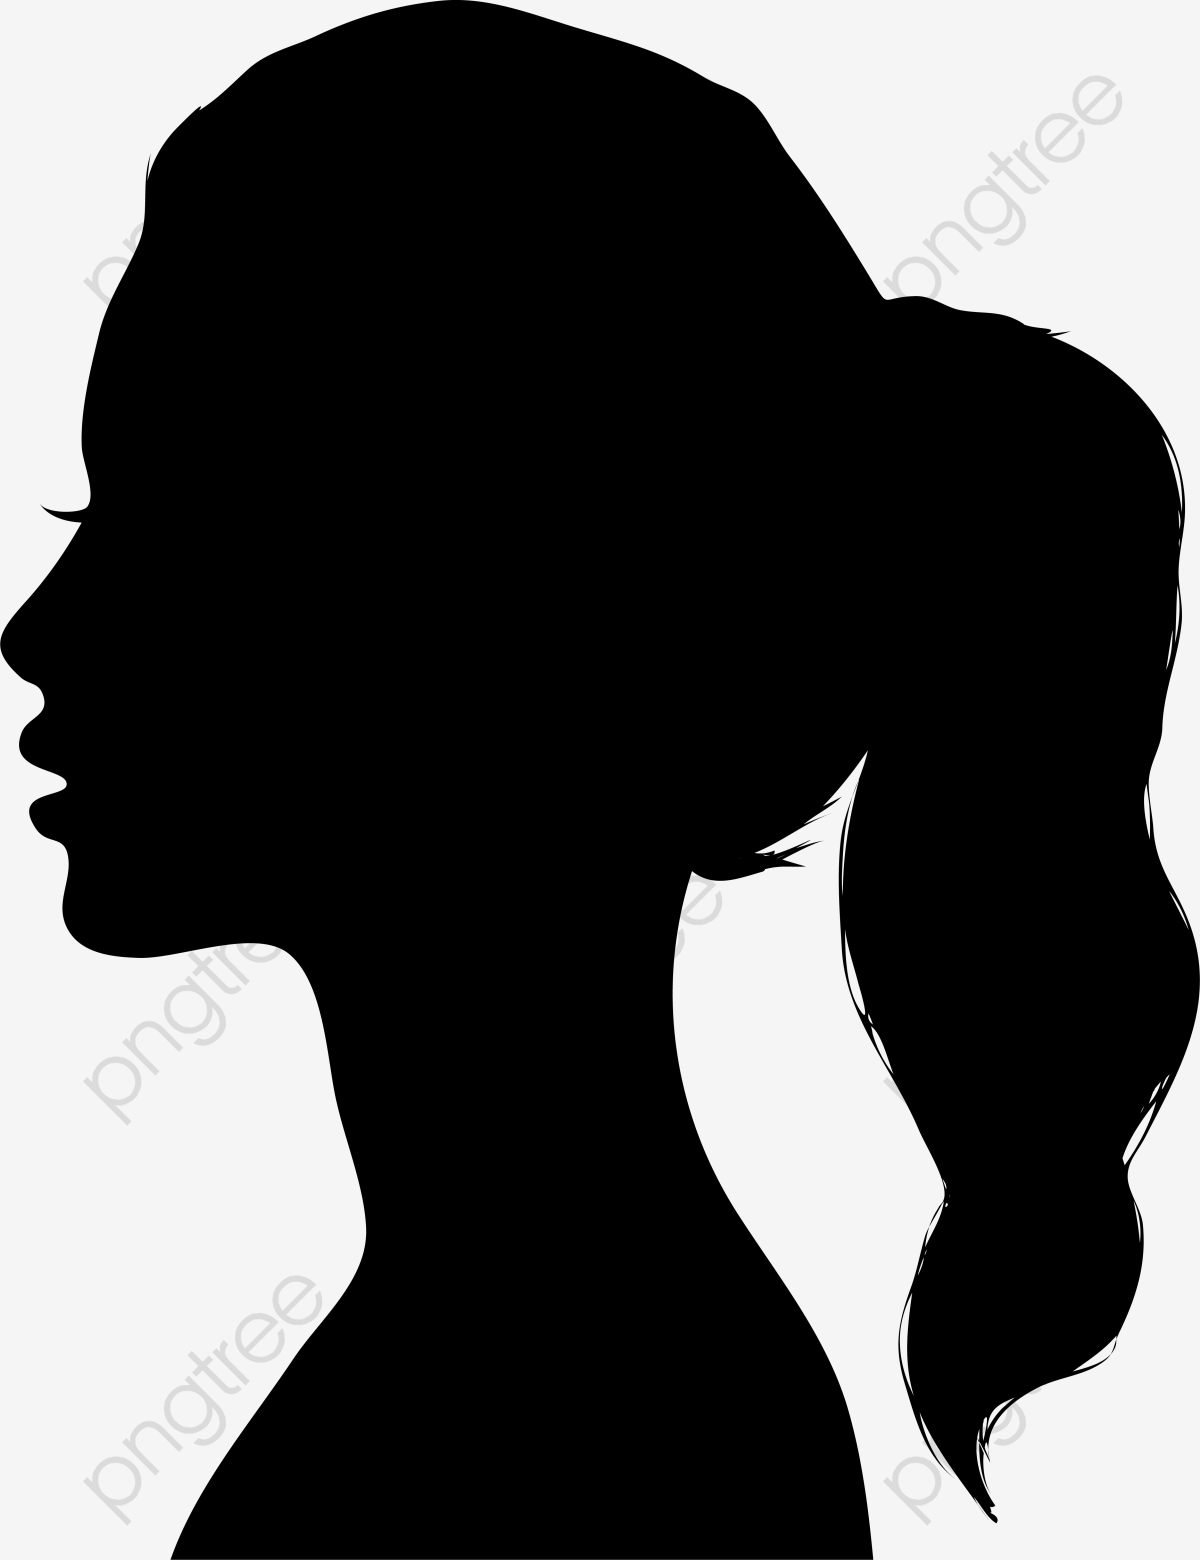 Woman Silhouette Material, Woman Clipart, Silhouette, Girl.